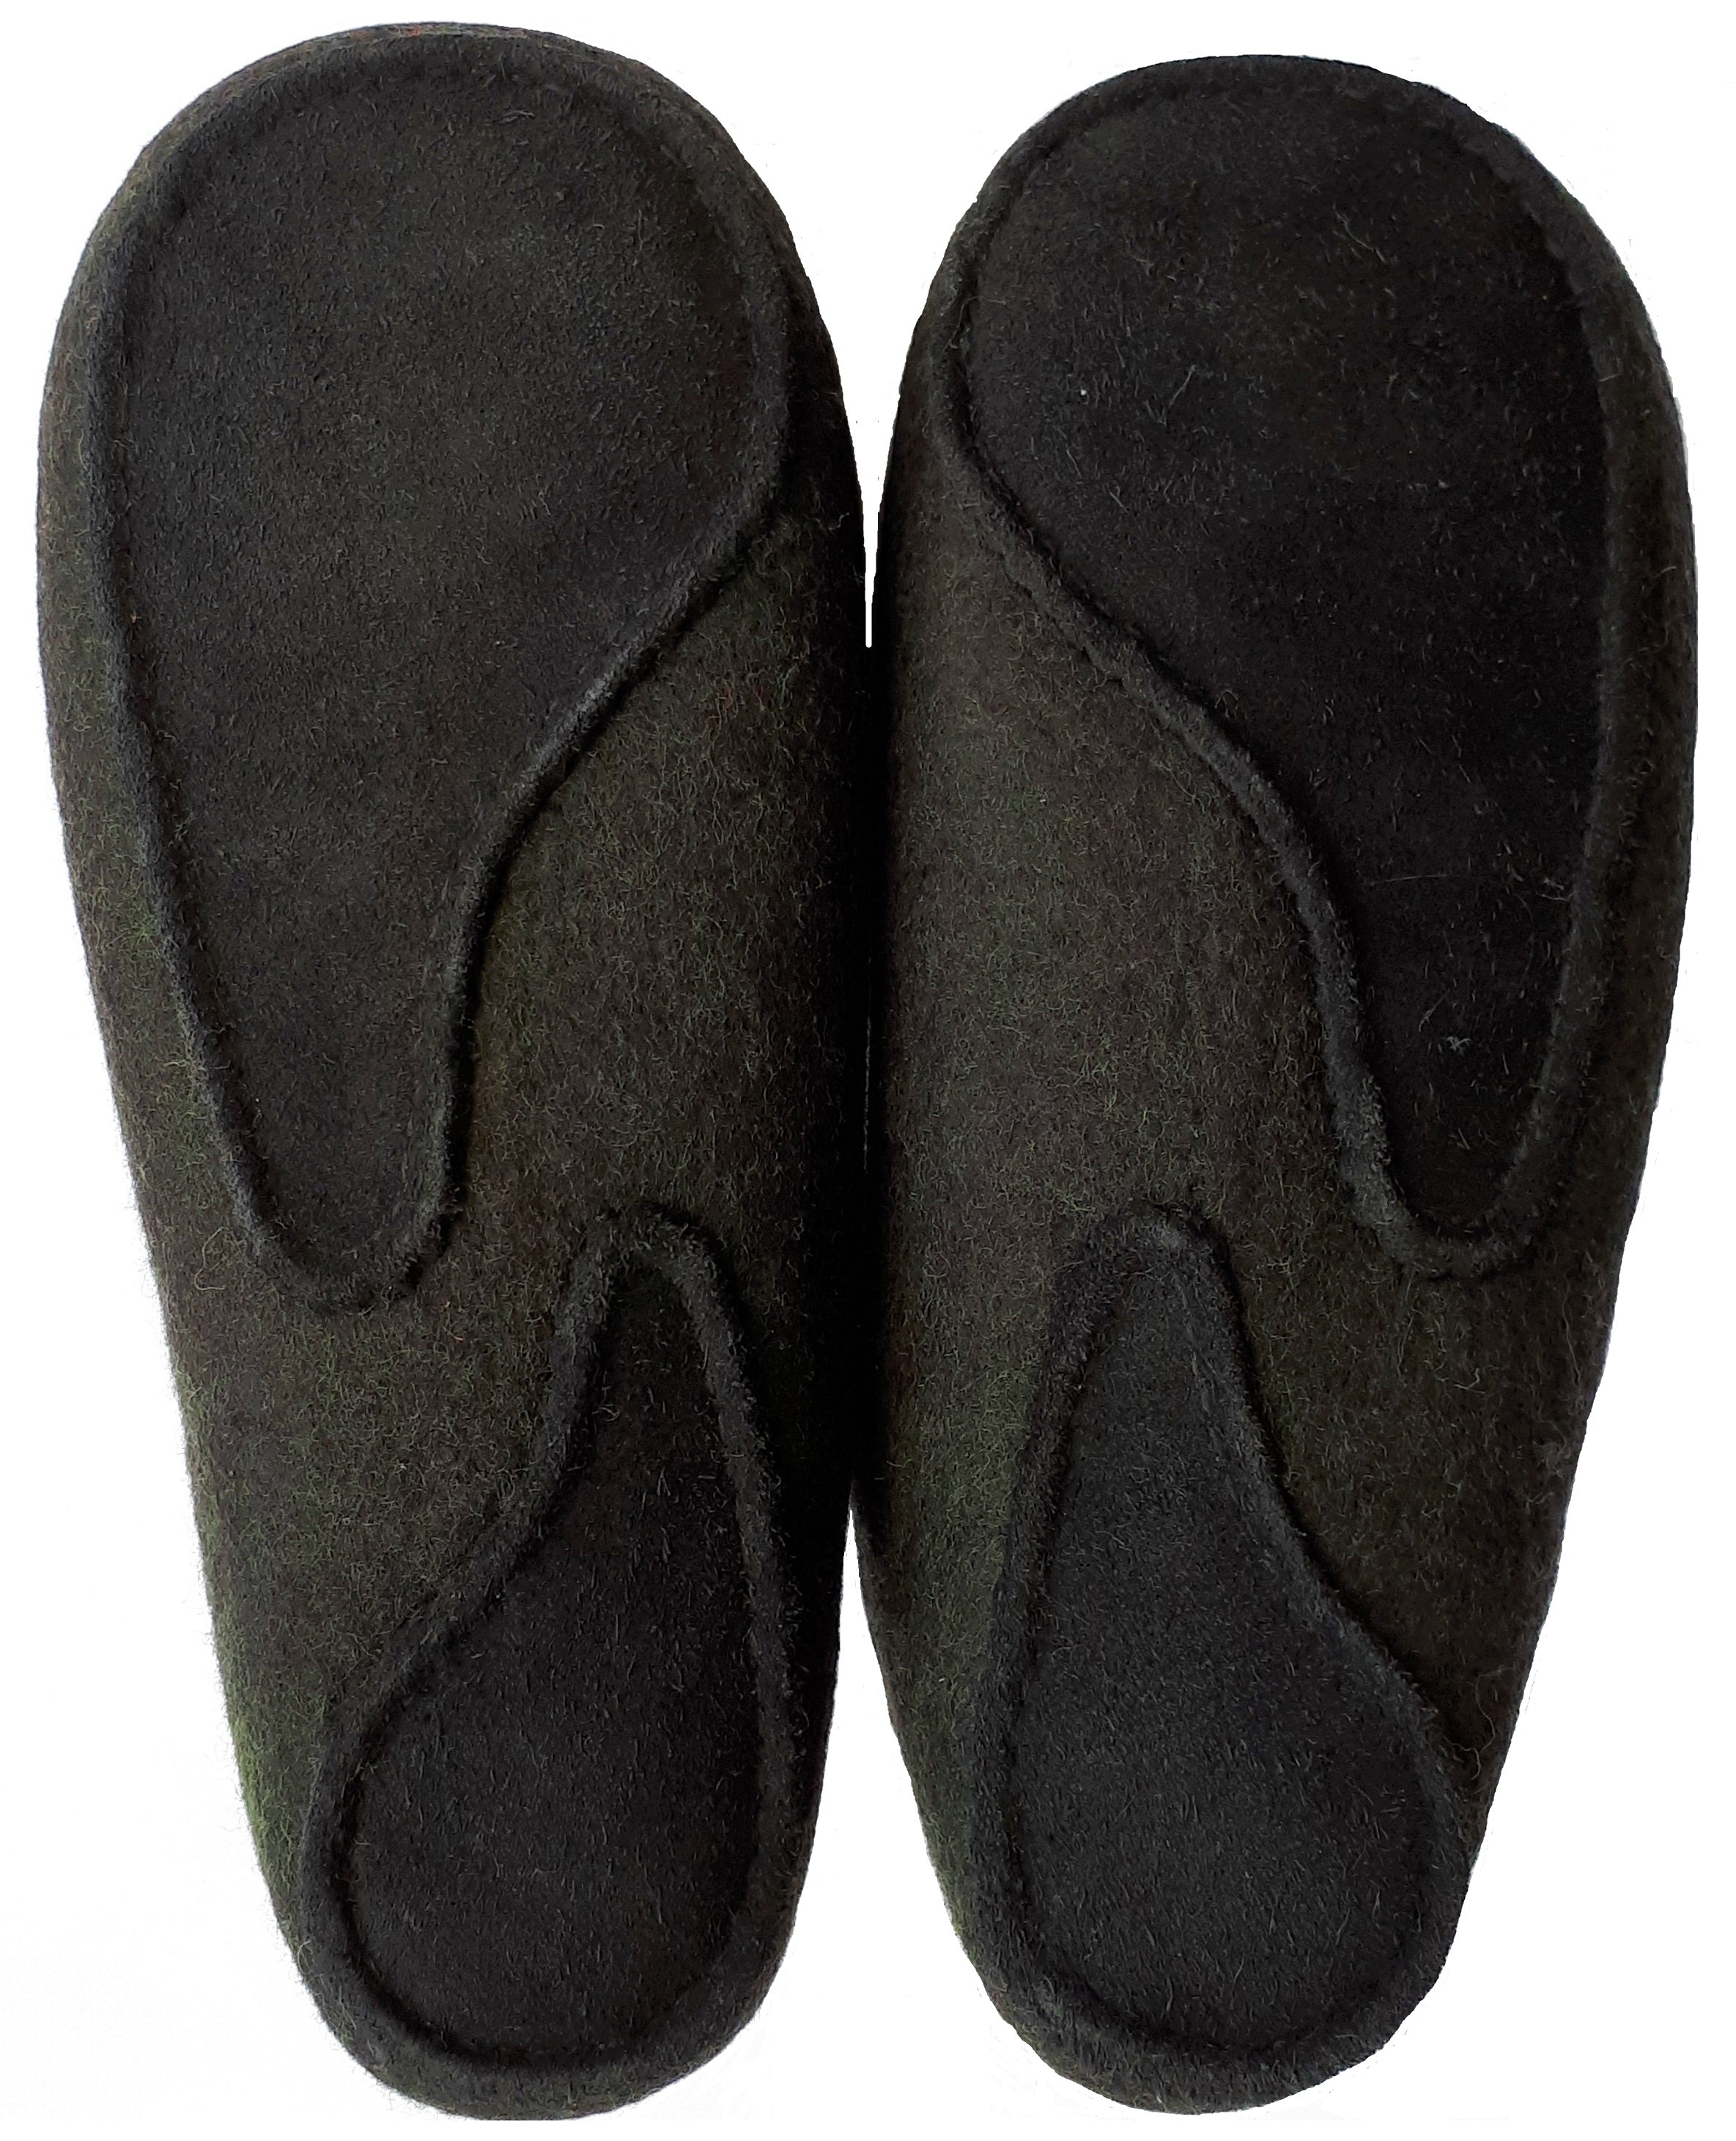 men's handmade 100% wool felt slipper with durable faux suede leather sole from Mongolia